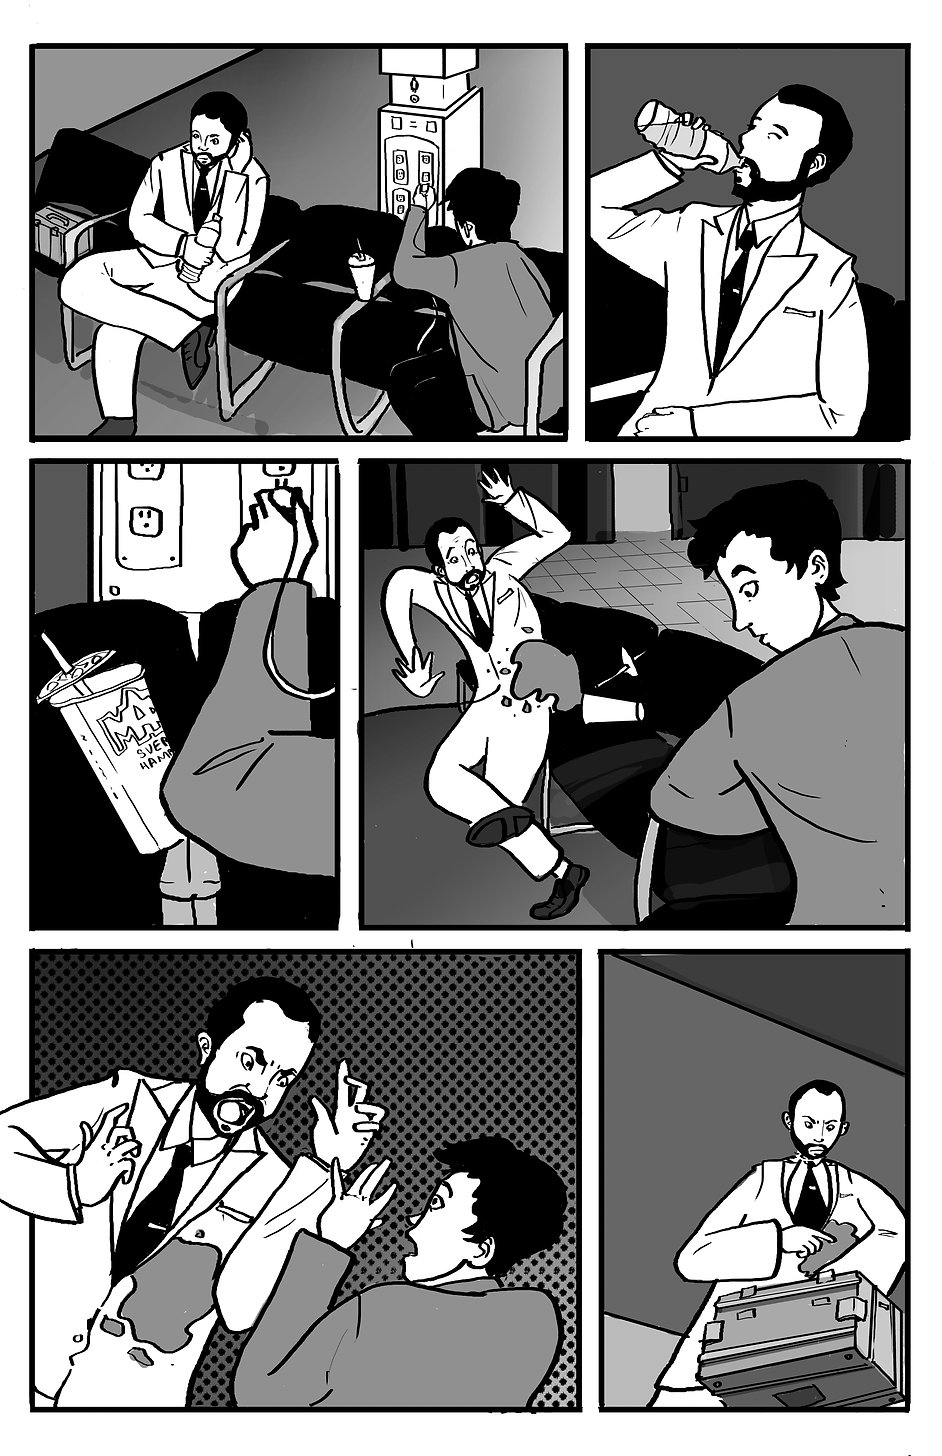 Gaskins_Amanda_Project5_Inks_Page2.jpg